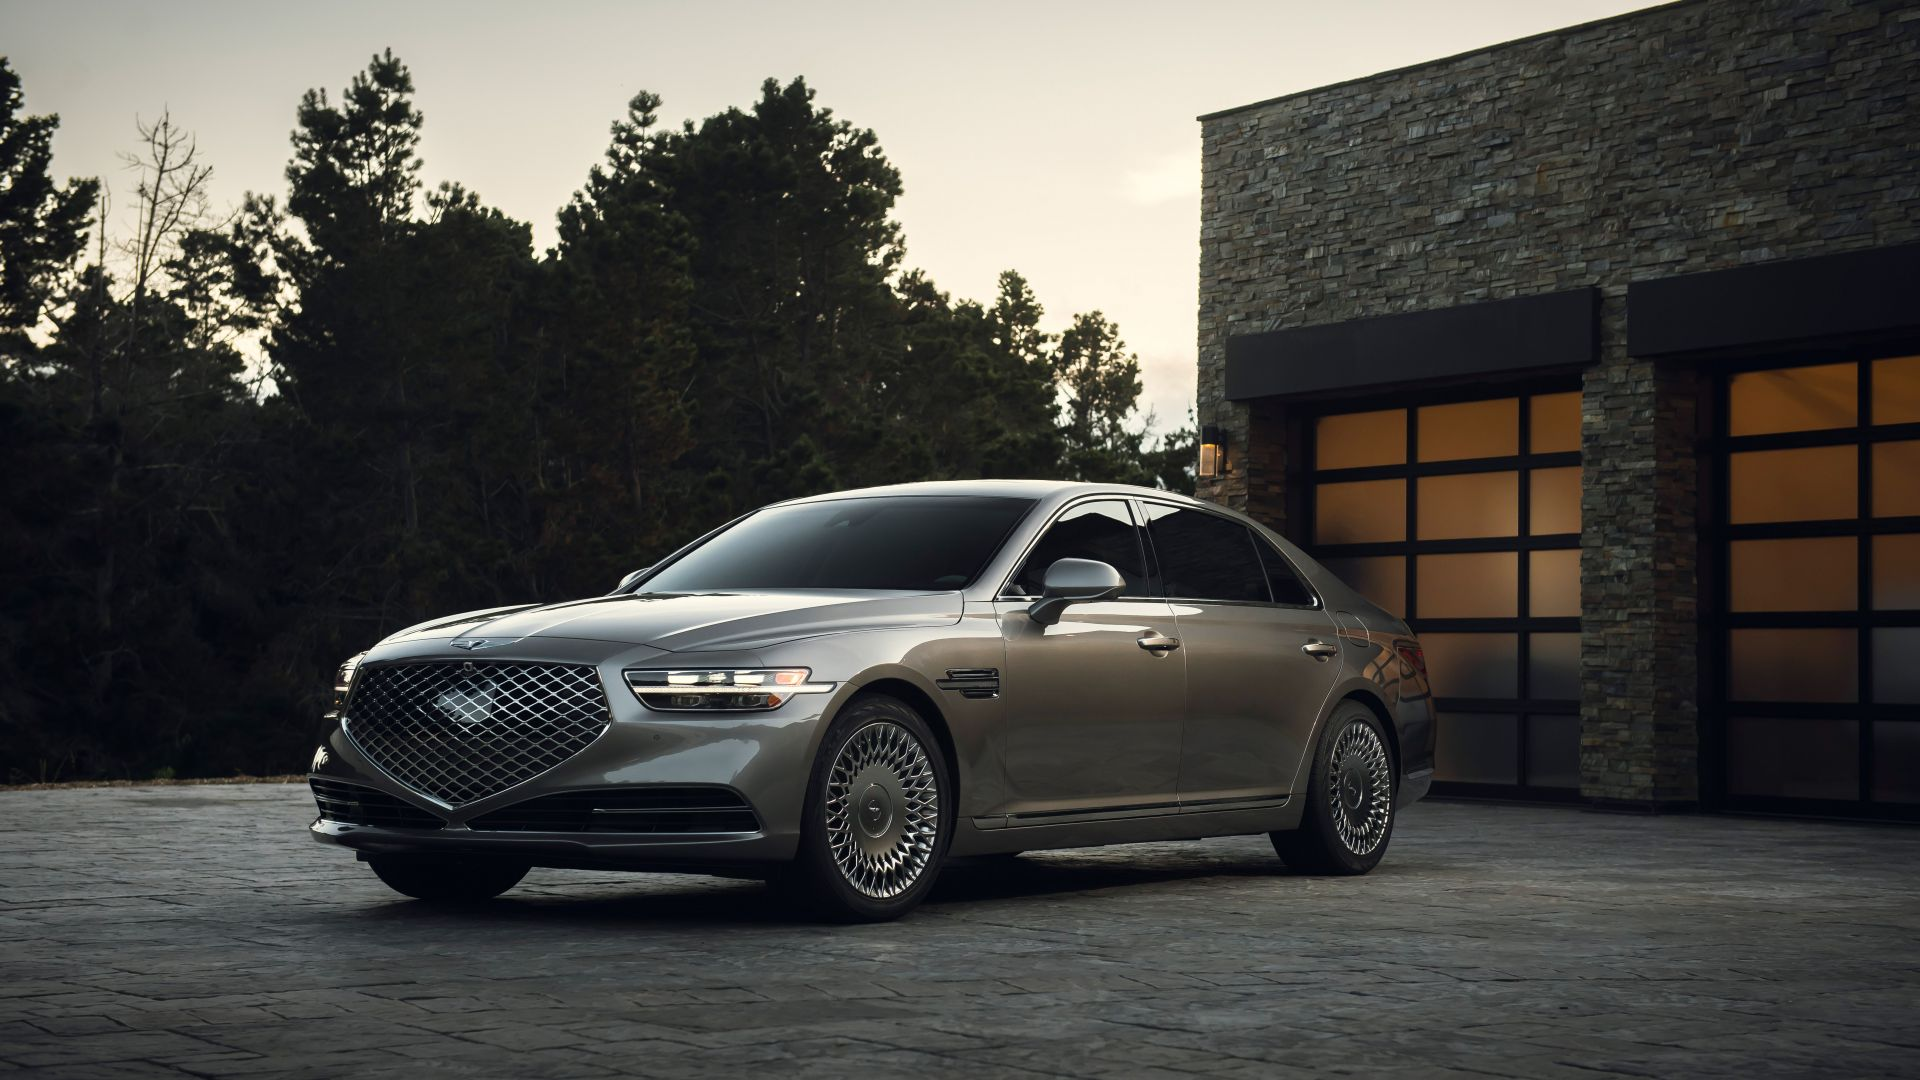 Genesis G90, 2020 cars, luxury cars, 8K (horizontal)